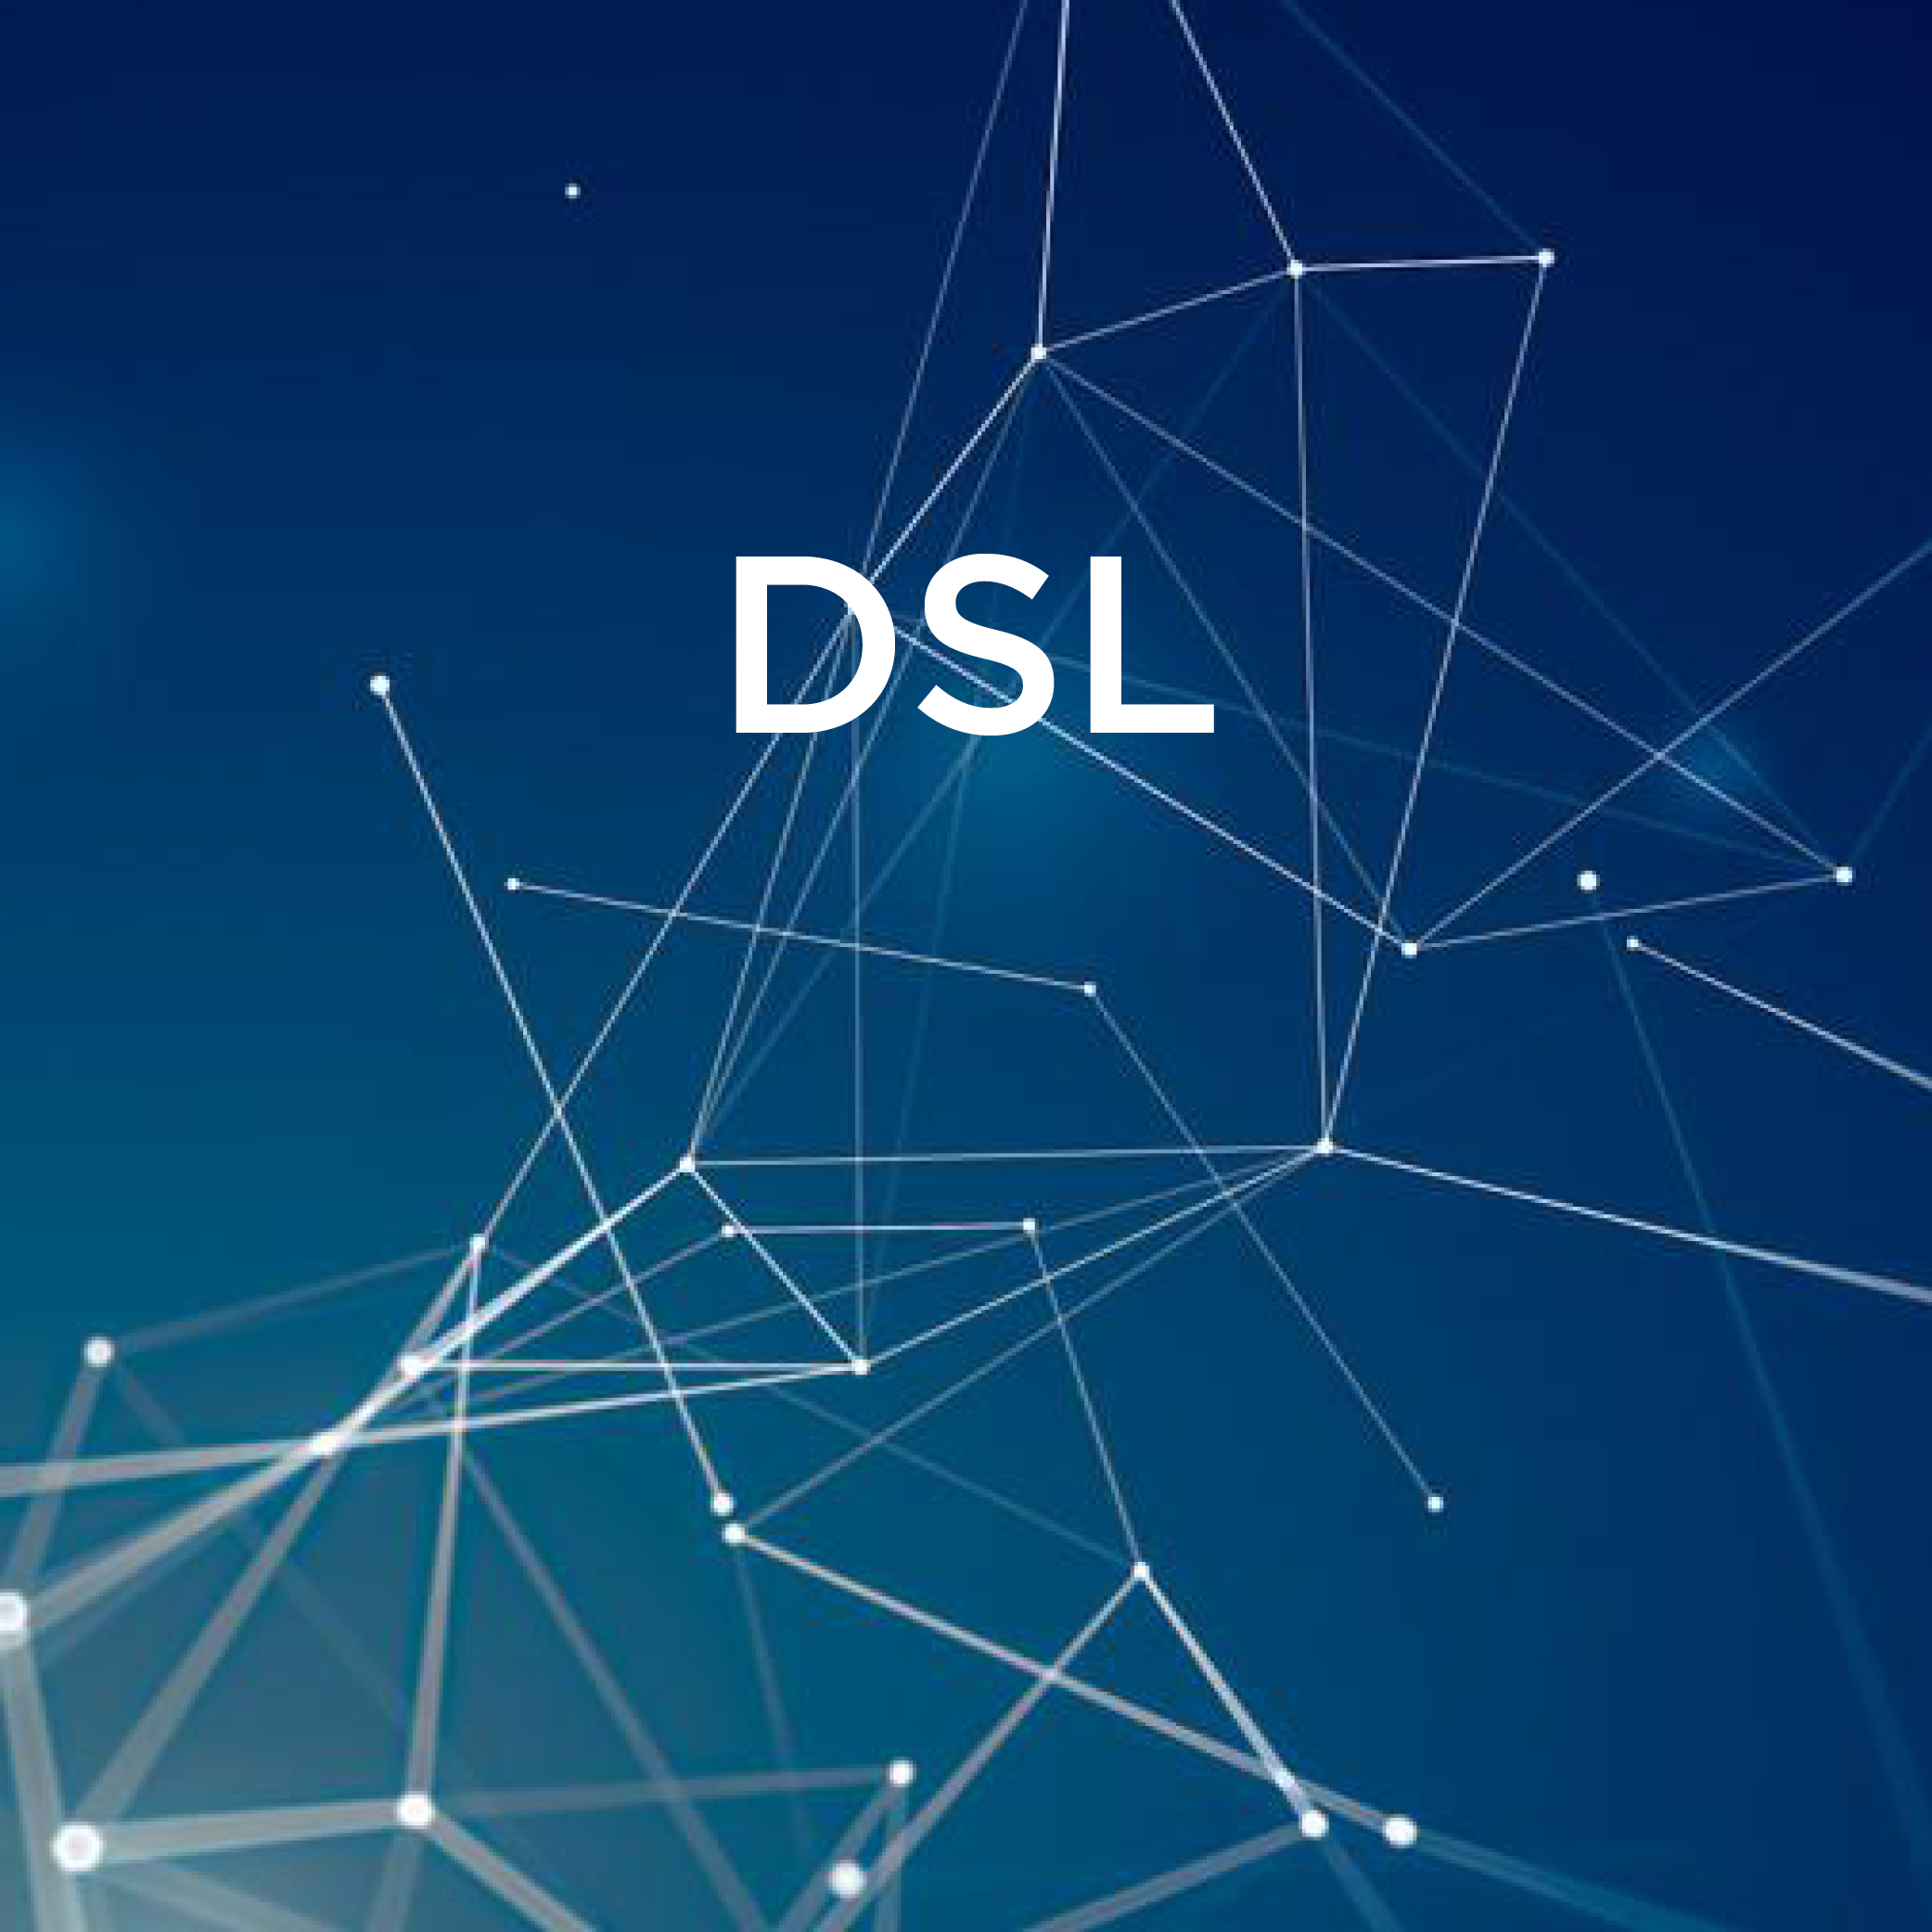 Dynamical Systems Laboratory (DSL)